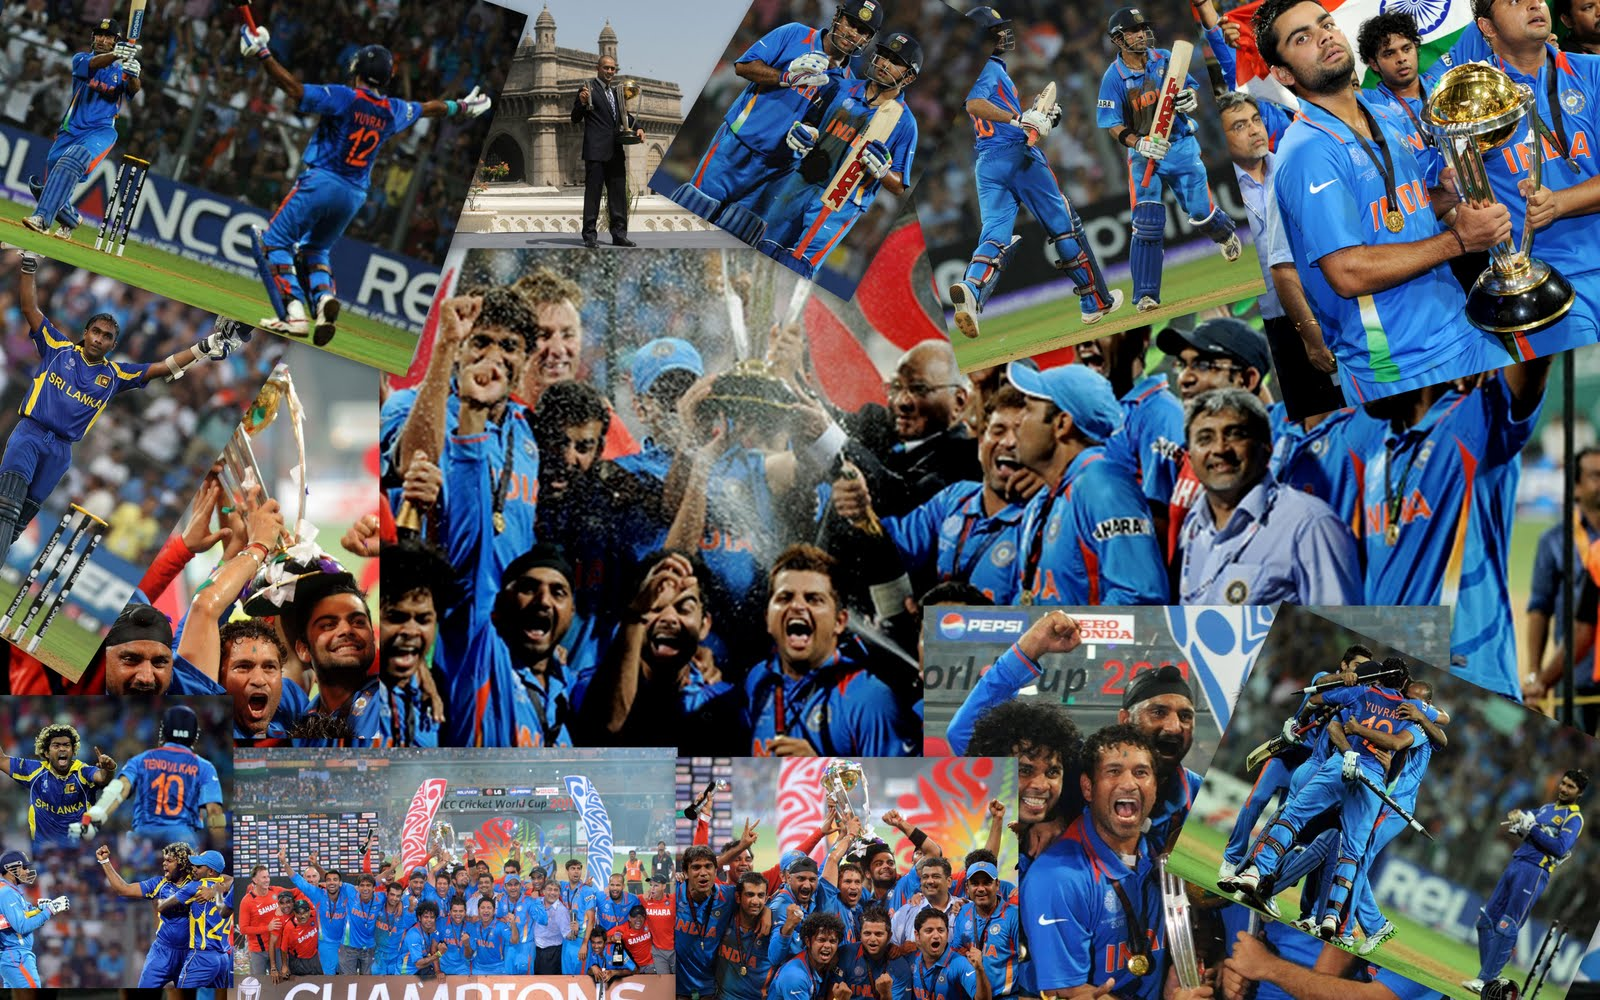 essay of world cup 2011 The 2011 icc cricket world cup was the tenth cricket world cup it was played in india, sri lanka, and for the first time bangladesh pakistan was also.